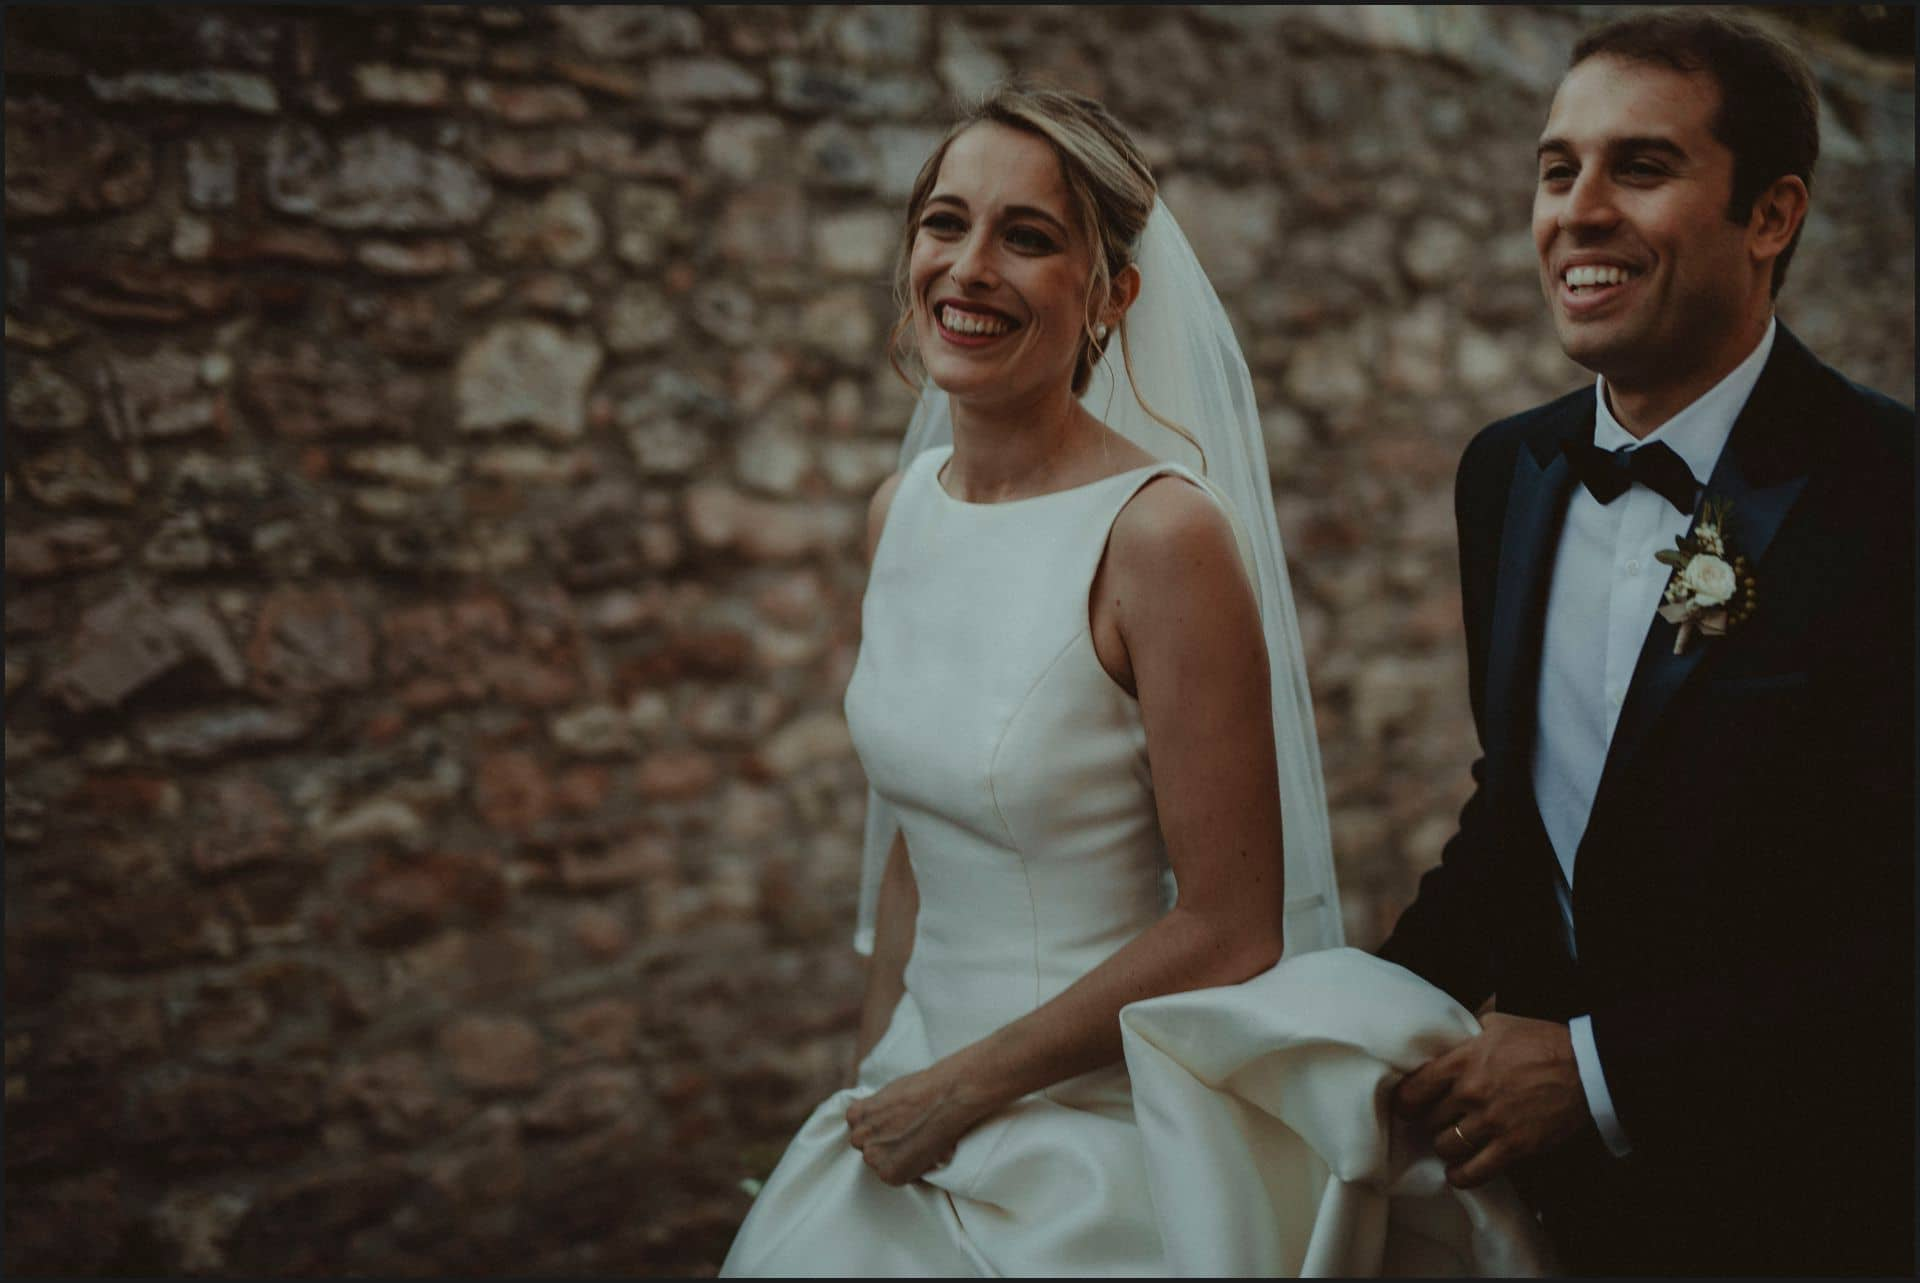 umbria, wedding, assisi, bride, groom